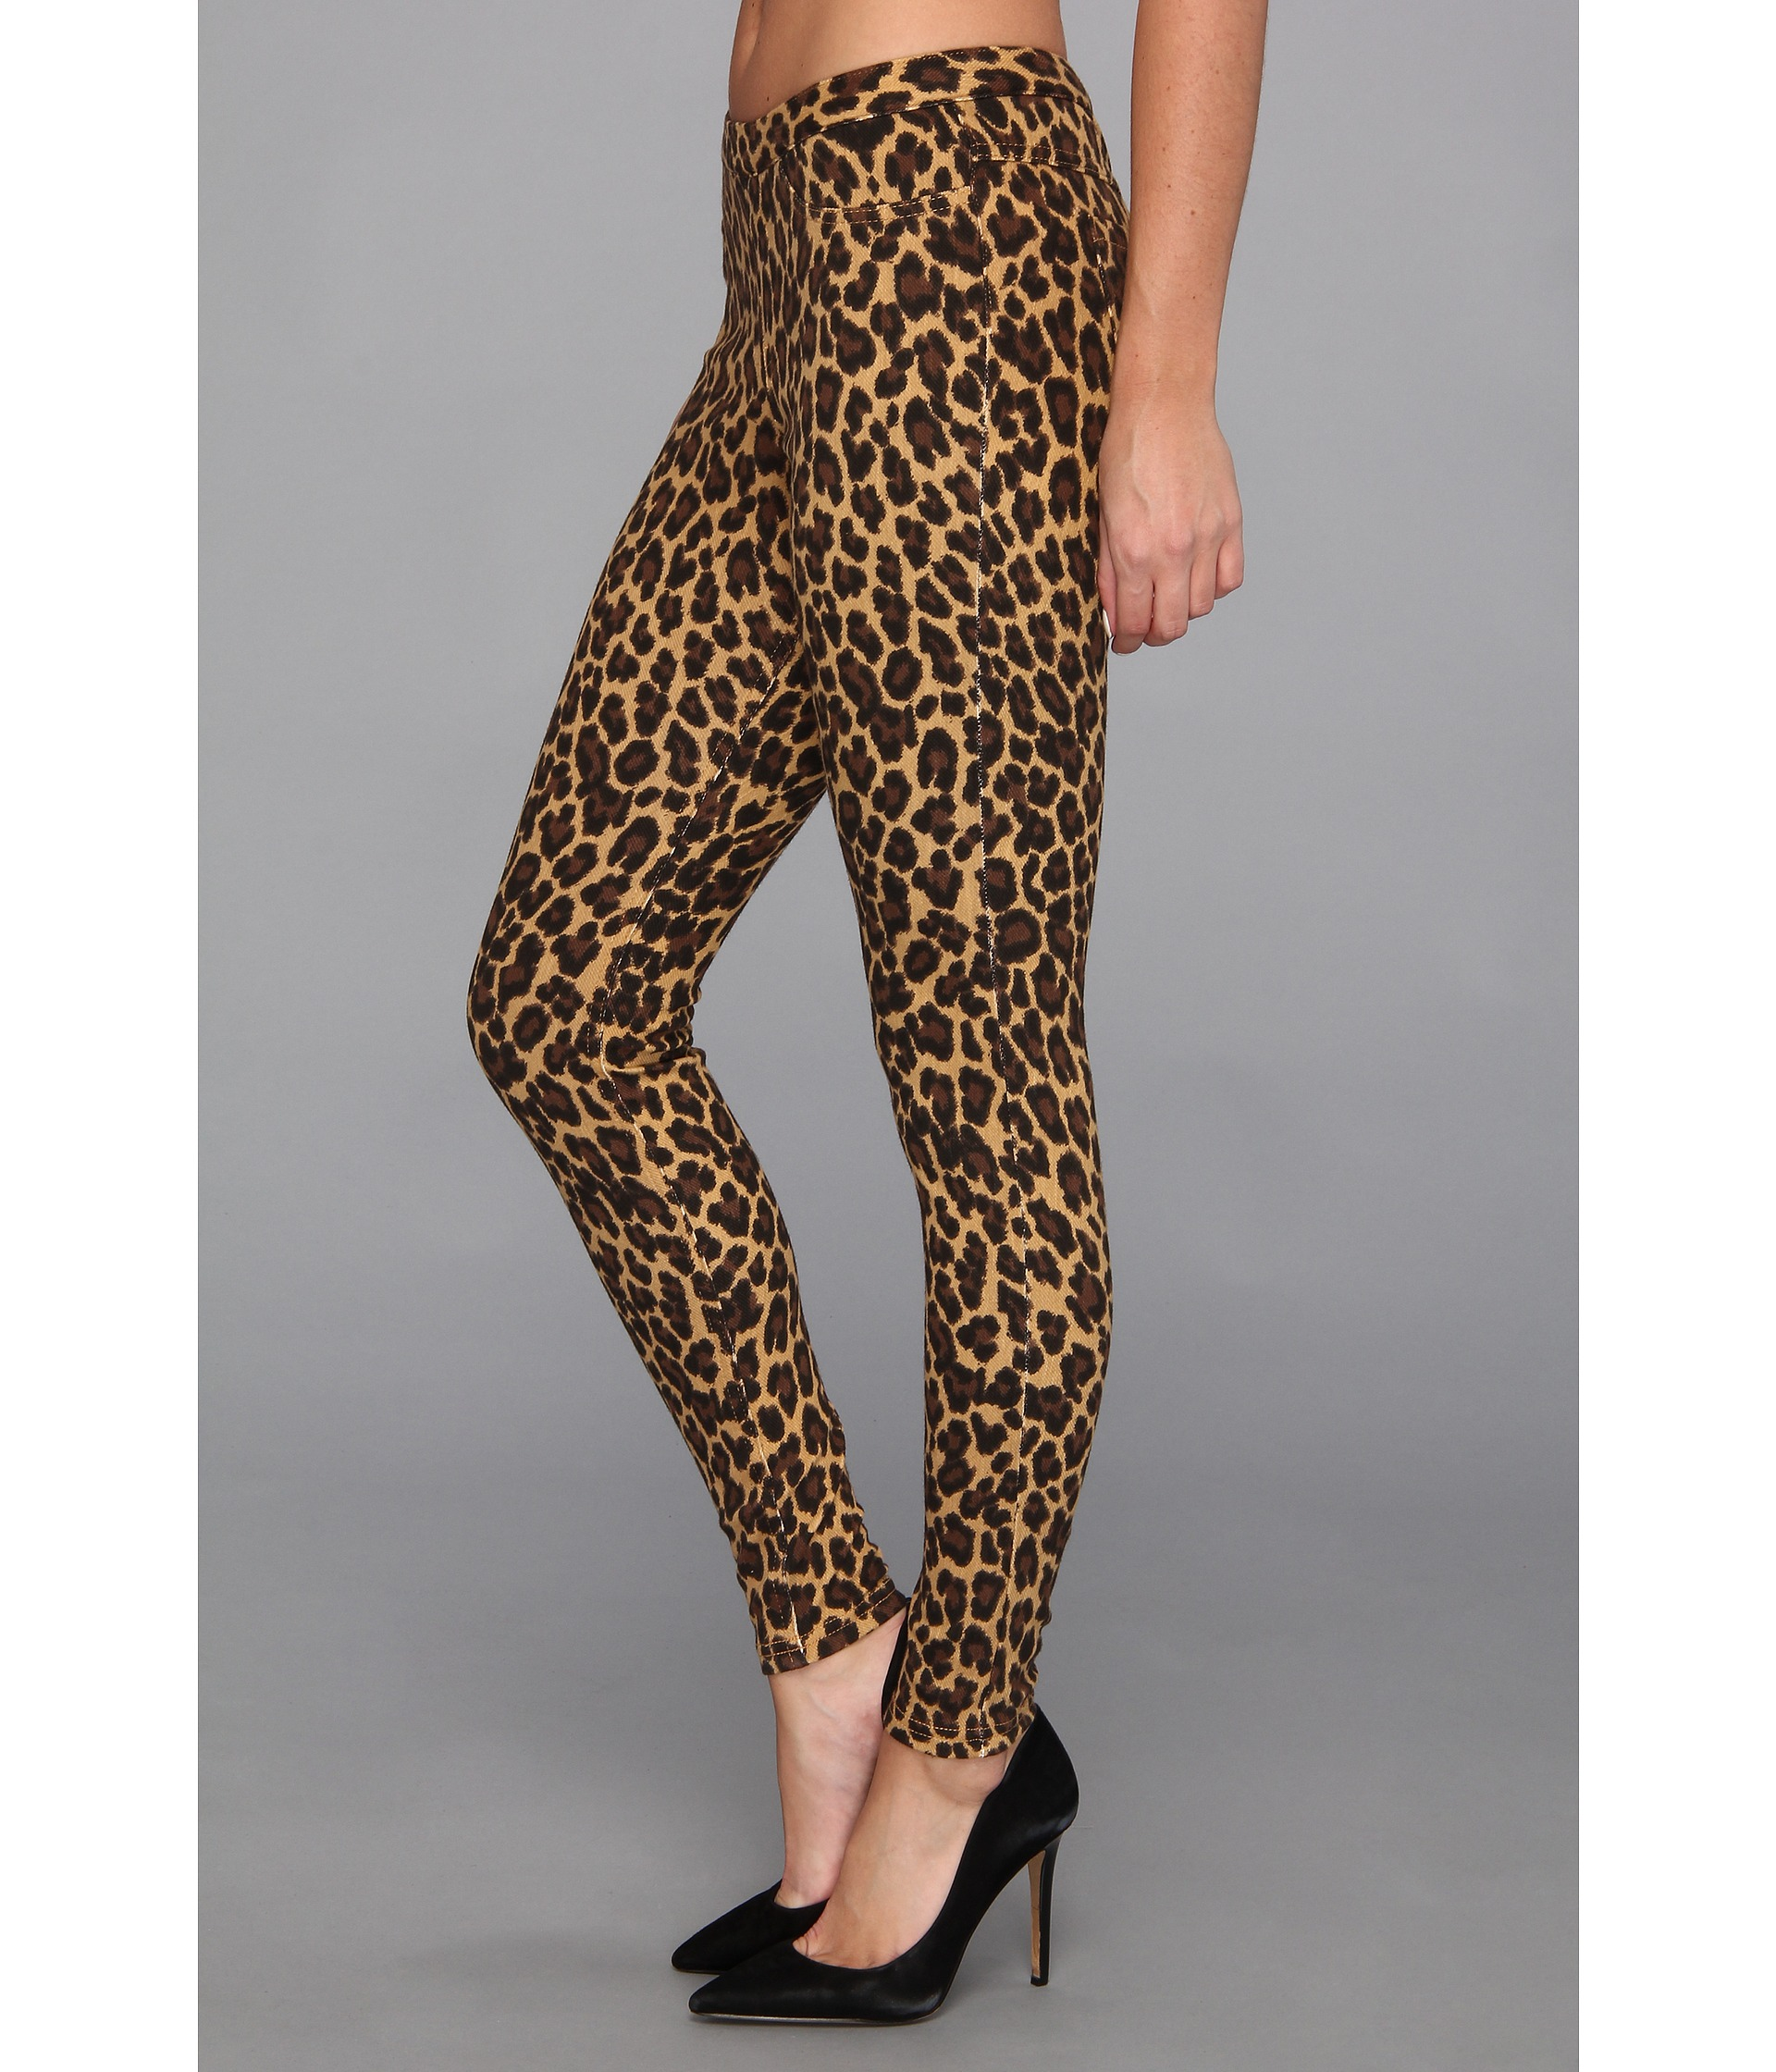 Watch Leopard Leggings porn videos for free, here on arifvisitor.ga Discover the growing collection of high quality Most Relevant XXX movies and clips. No other sex tube is more popular and features more Leopard Leggings scenes than Pornhub! Browse through our impressive selection of porn videos in HD quality on any device you own.